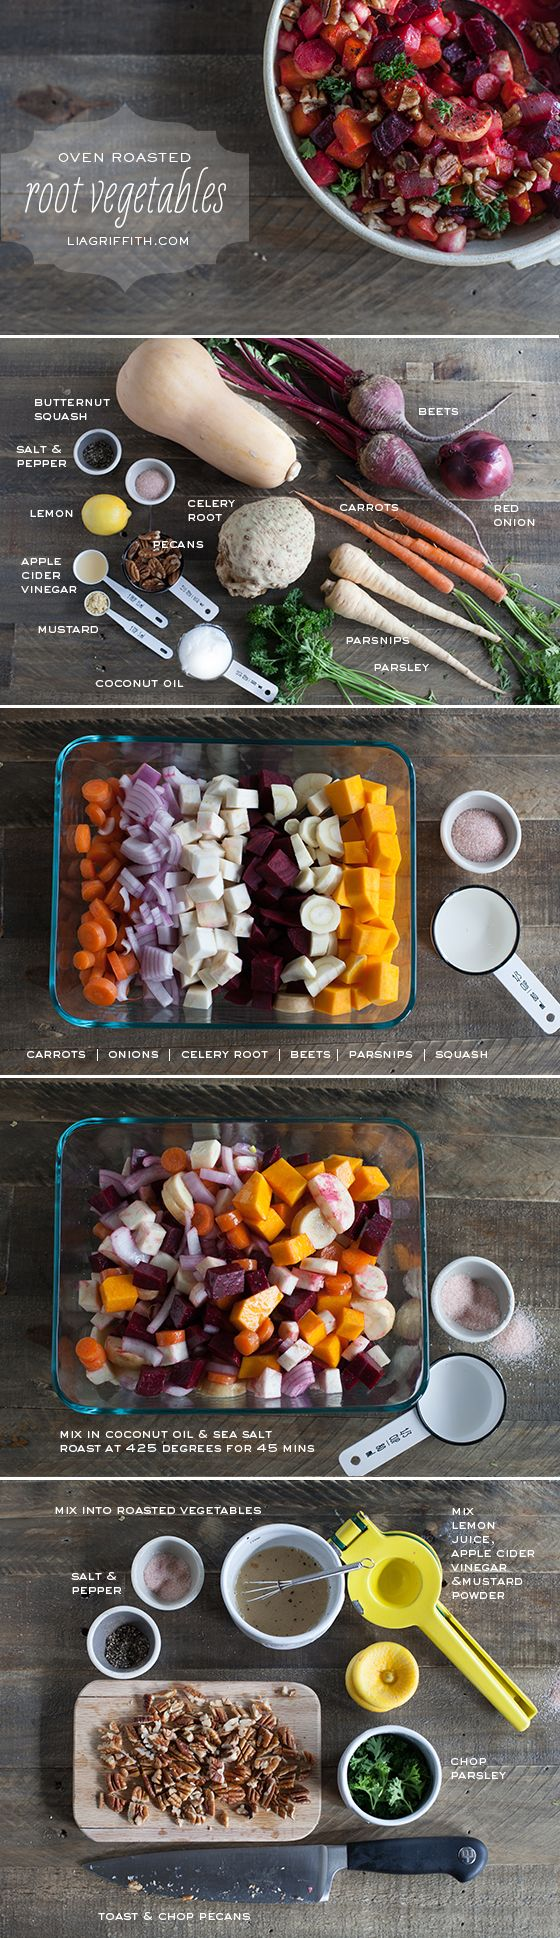 Food Lover Friday: Oven Roasted Root Vegetables - Please consider enjoying some flavorful Peruvian Chocolate this holiday season. Organic and fair trade certified, it's made where the cacao is grown providing fair paying wages to women. Varieties include: Quinoa, Amaranth, Coconut, Nibs, Coffee, and flavorful dark chocolate. Available on Amazon! http://www.amazon.com/gp/product/B00725K254